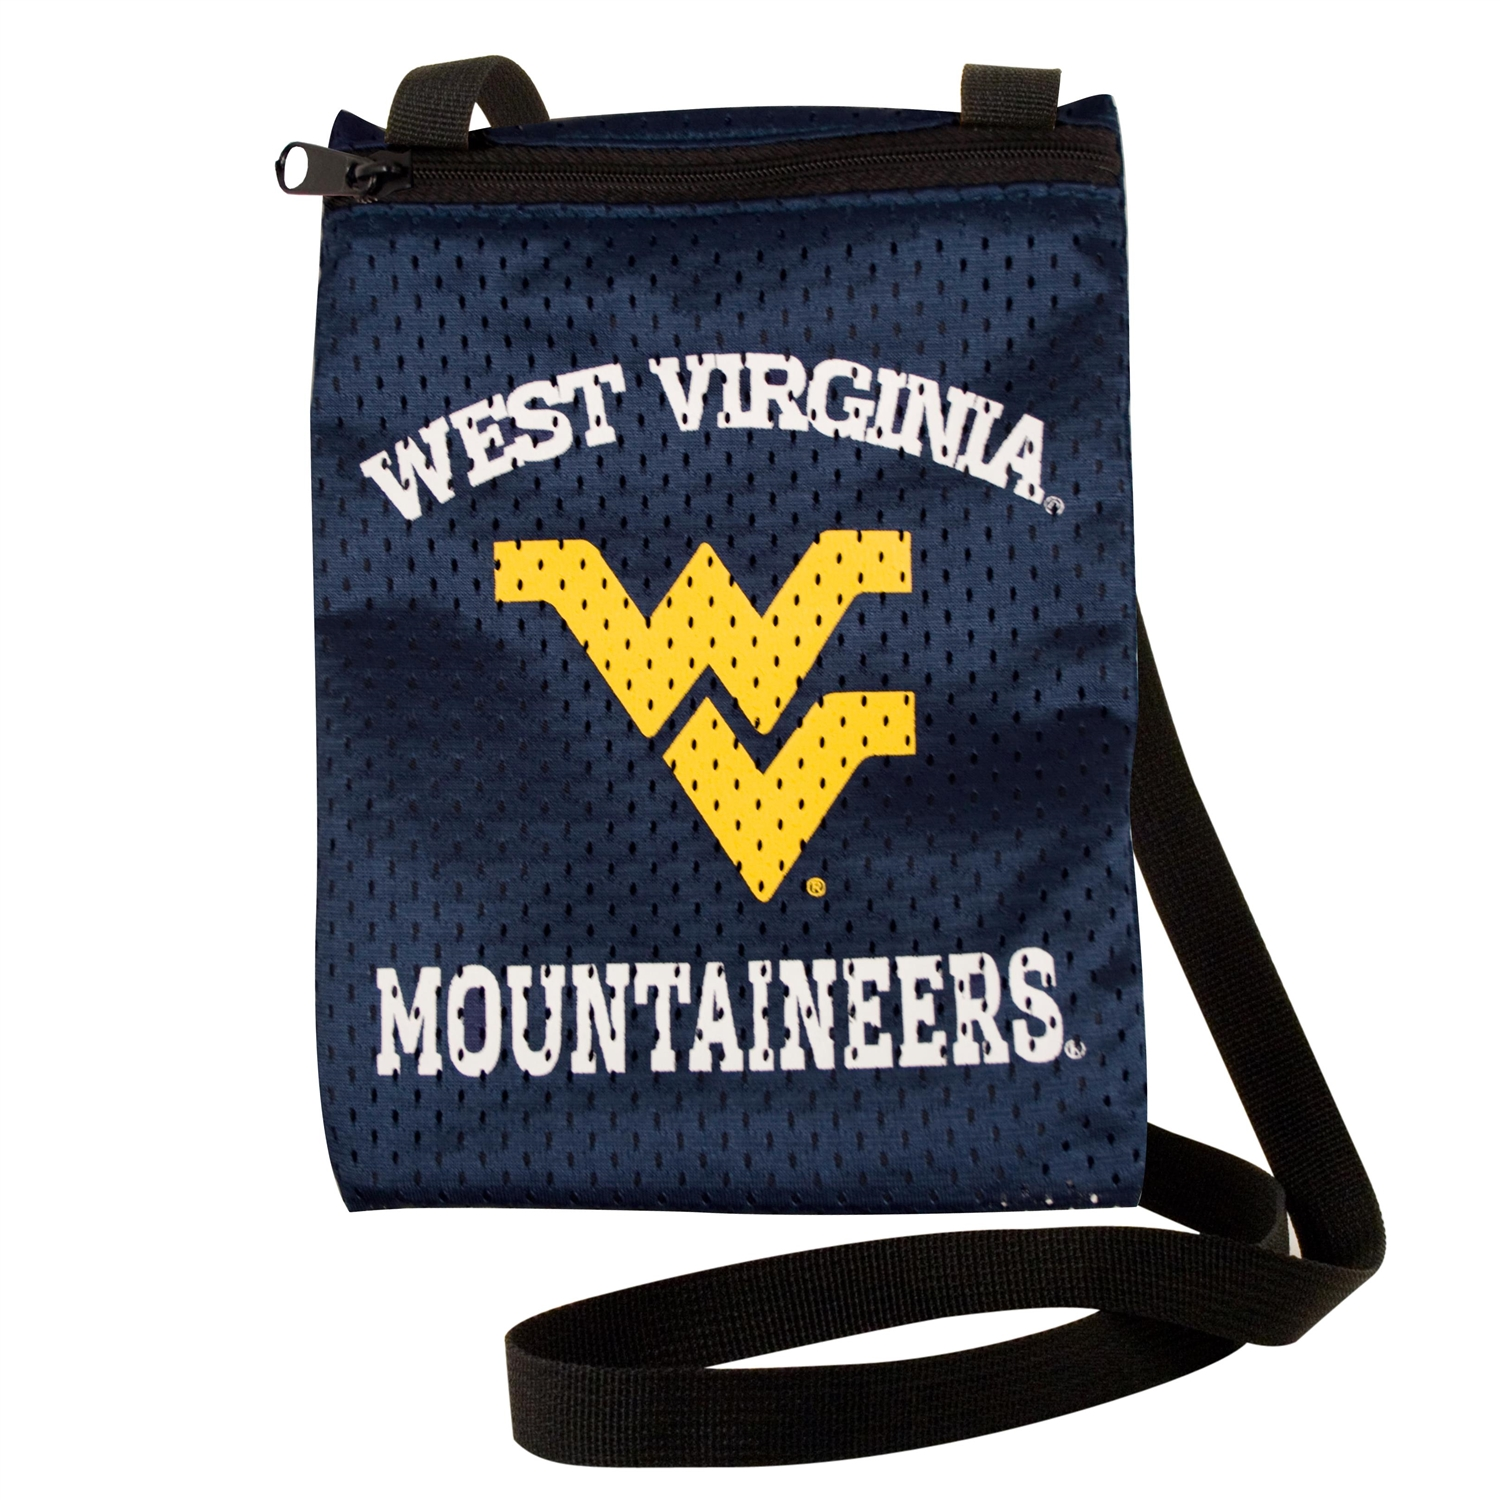 Ncaa College Dayspring Eagles Toys Games Puzzles Games - 100103-wvu-1 - West Virginia University Game Day Pouch 100103-WVU-1